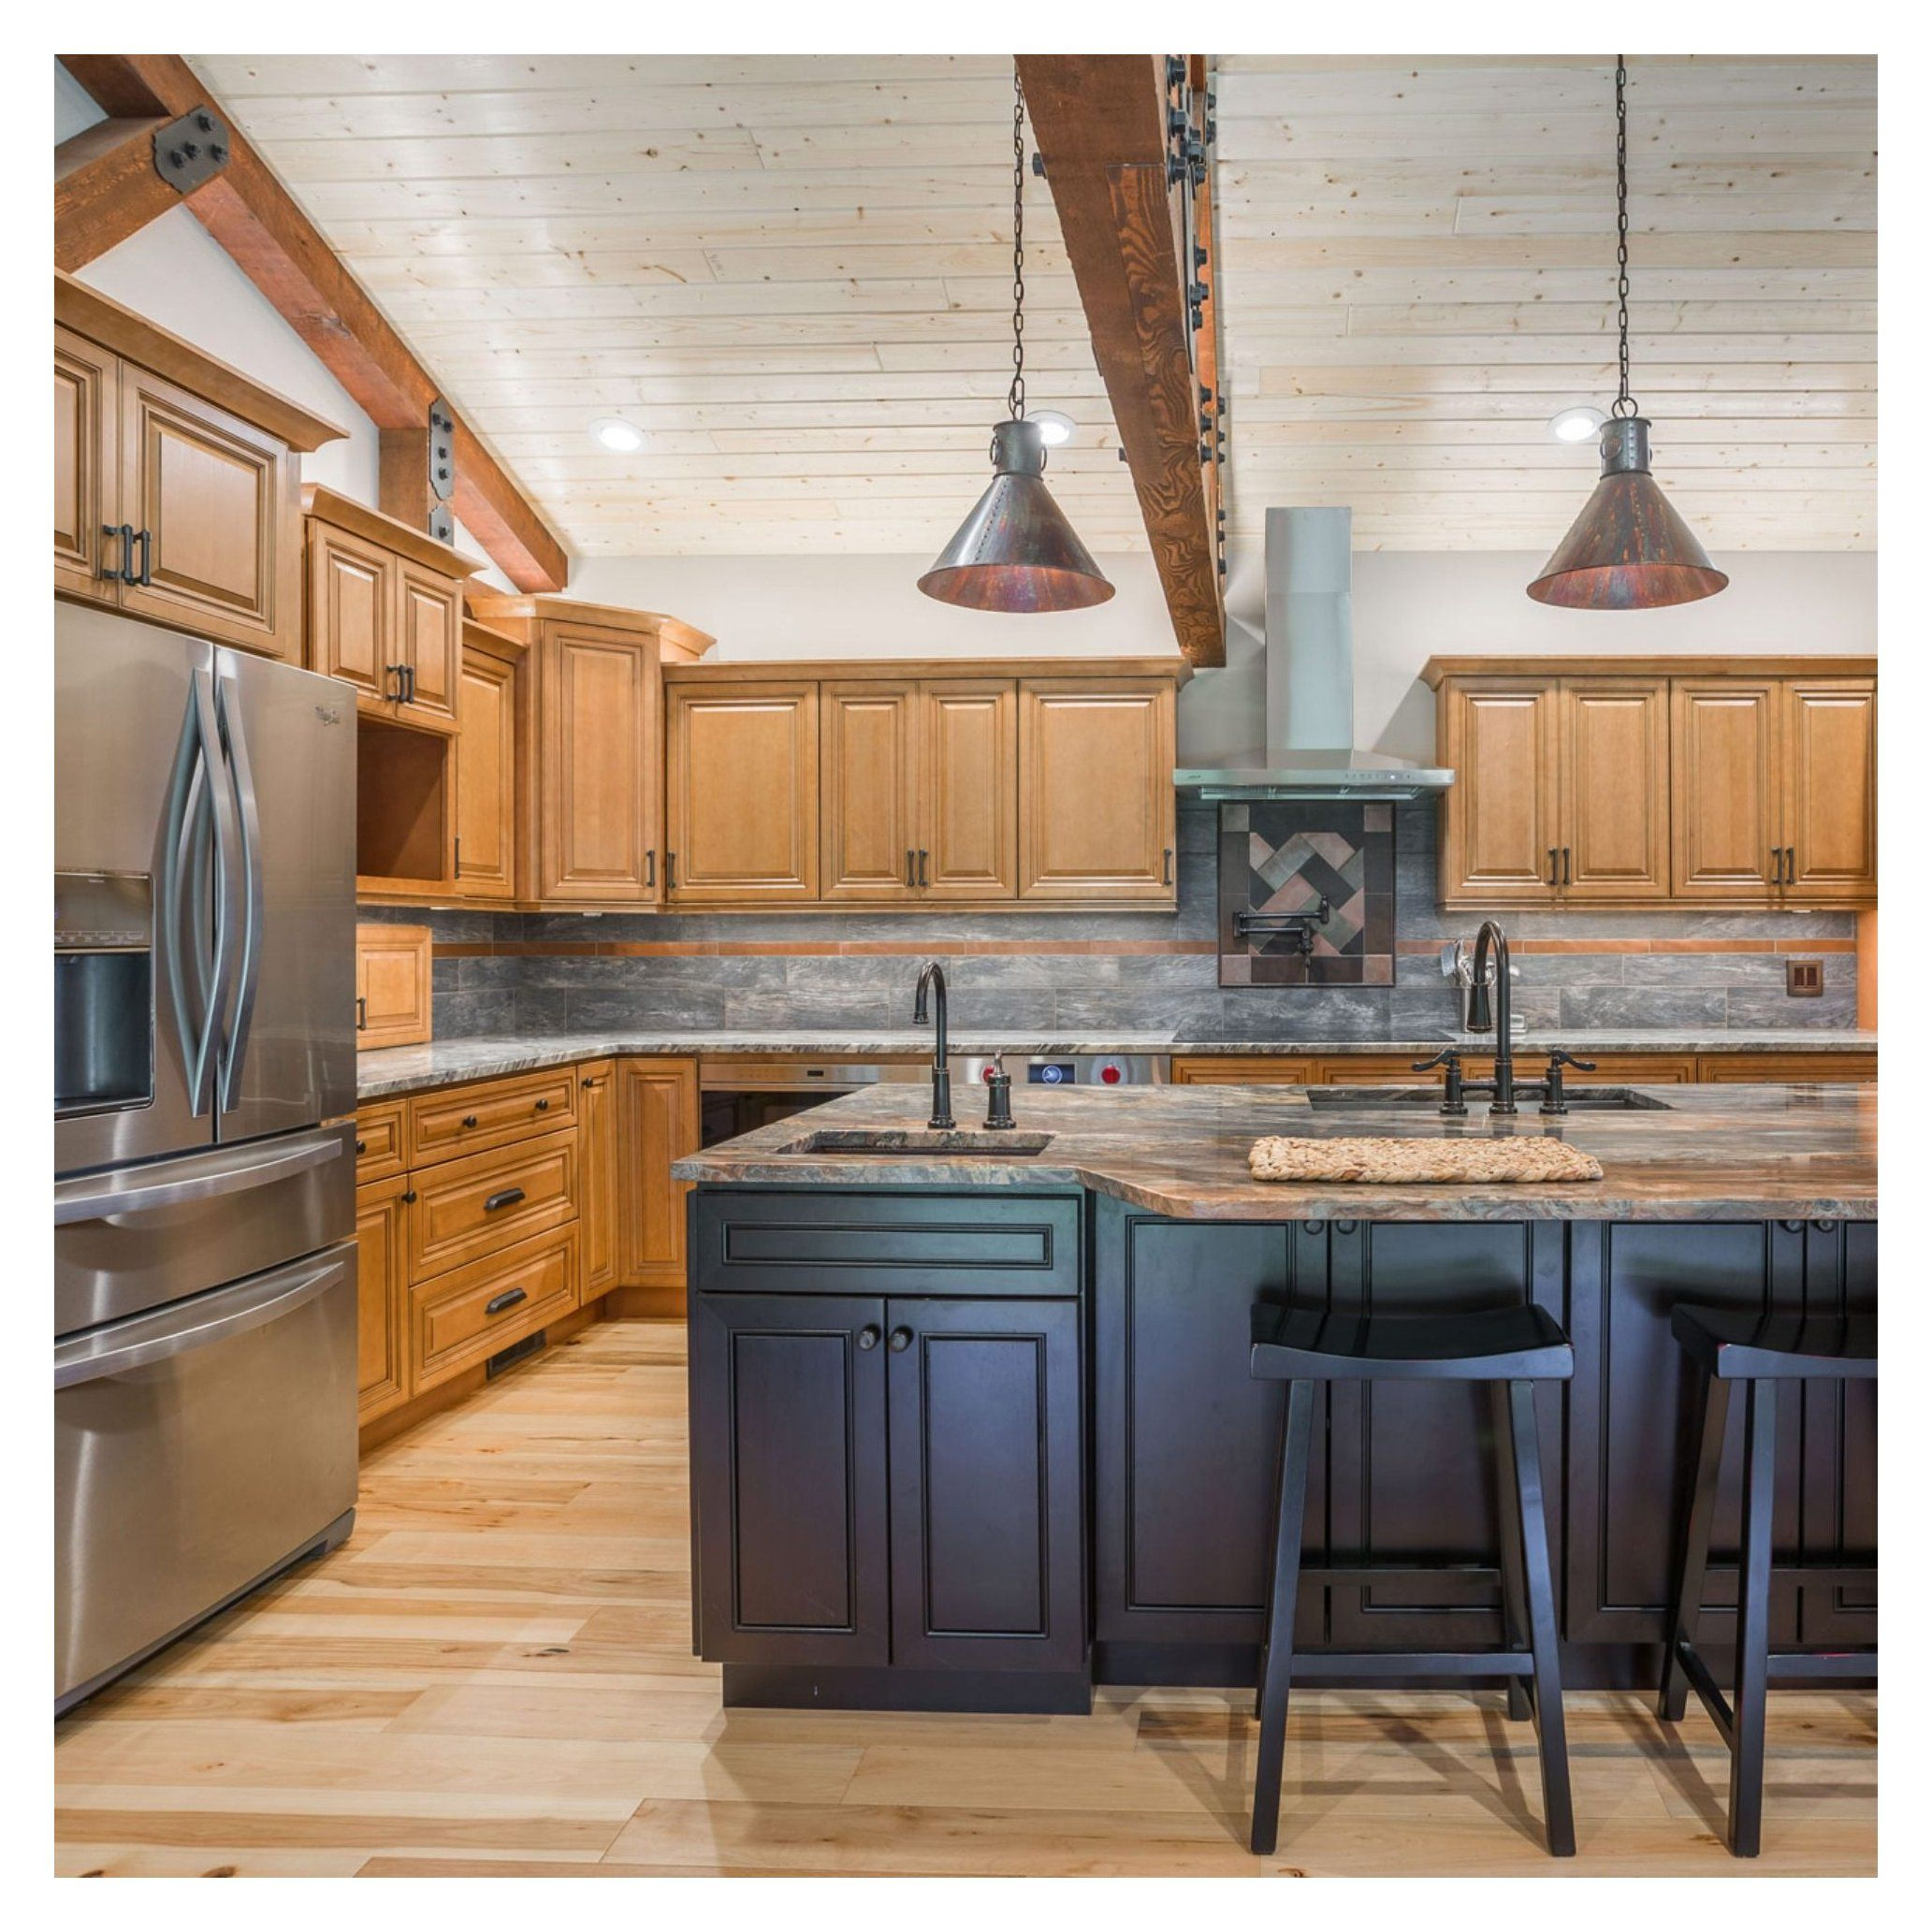 Pin By Erin Mckee On House In 2020 Maple Kitchen Cabinets Maple Cabinets Kitchen Cabinet Styles